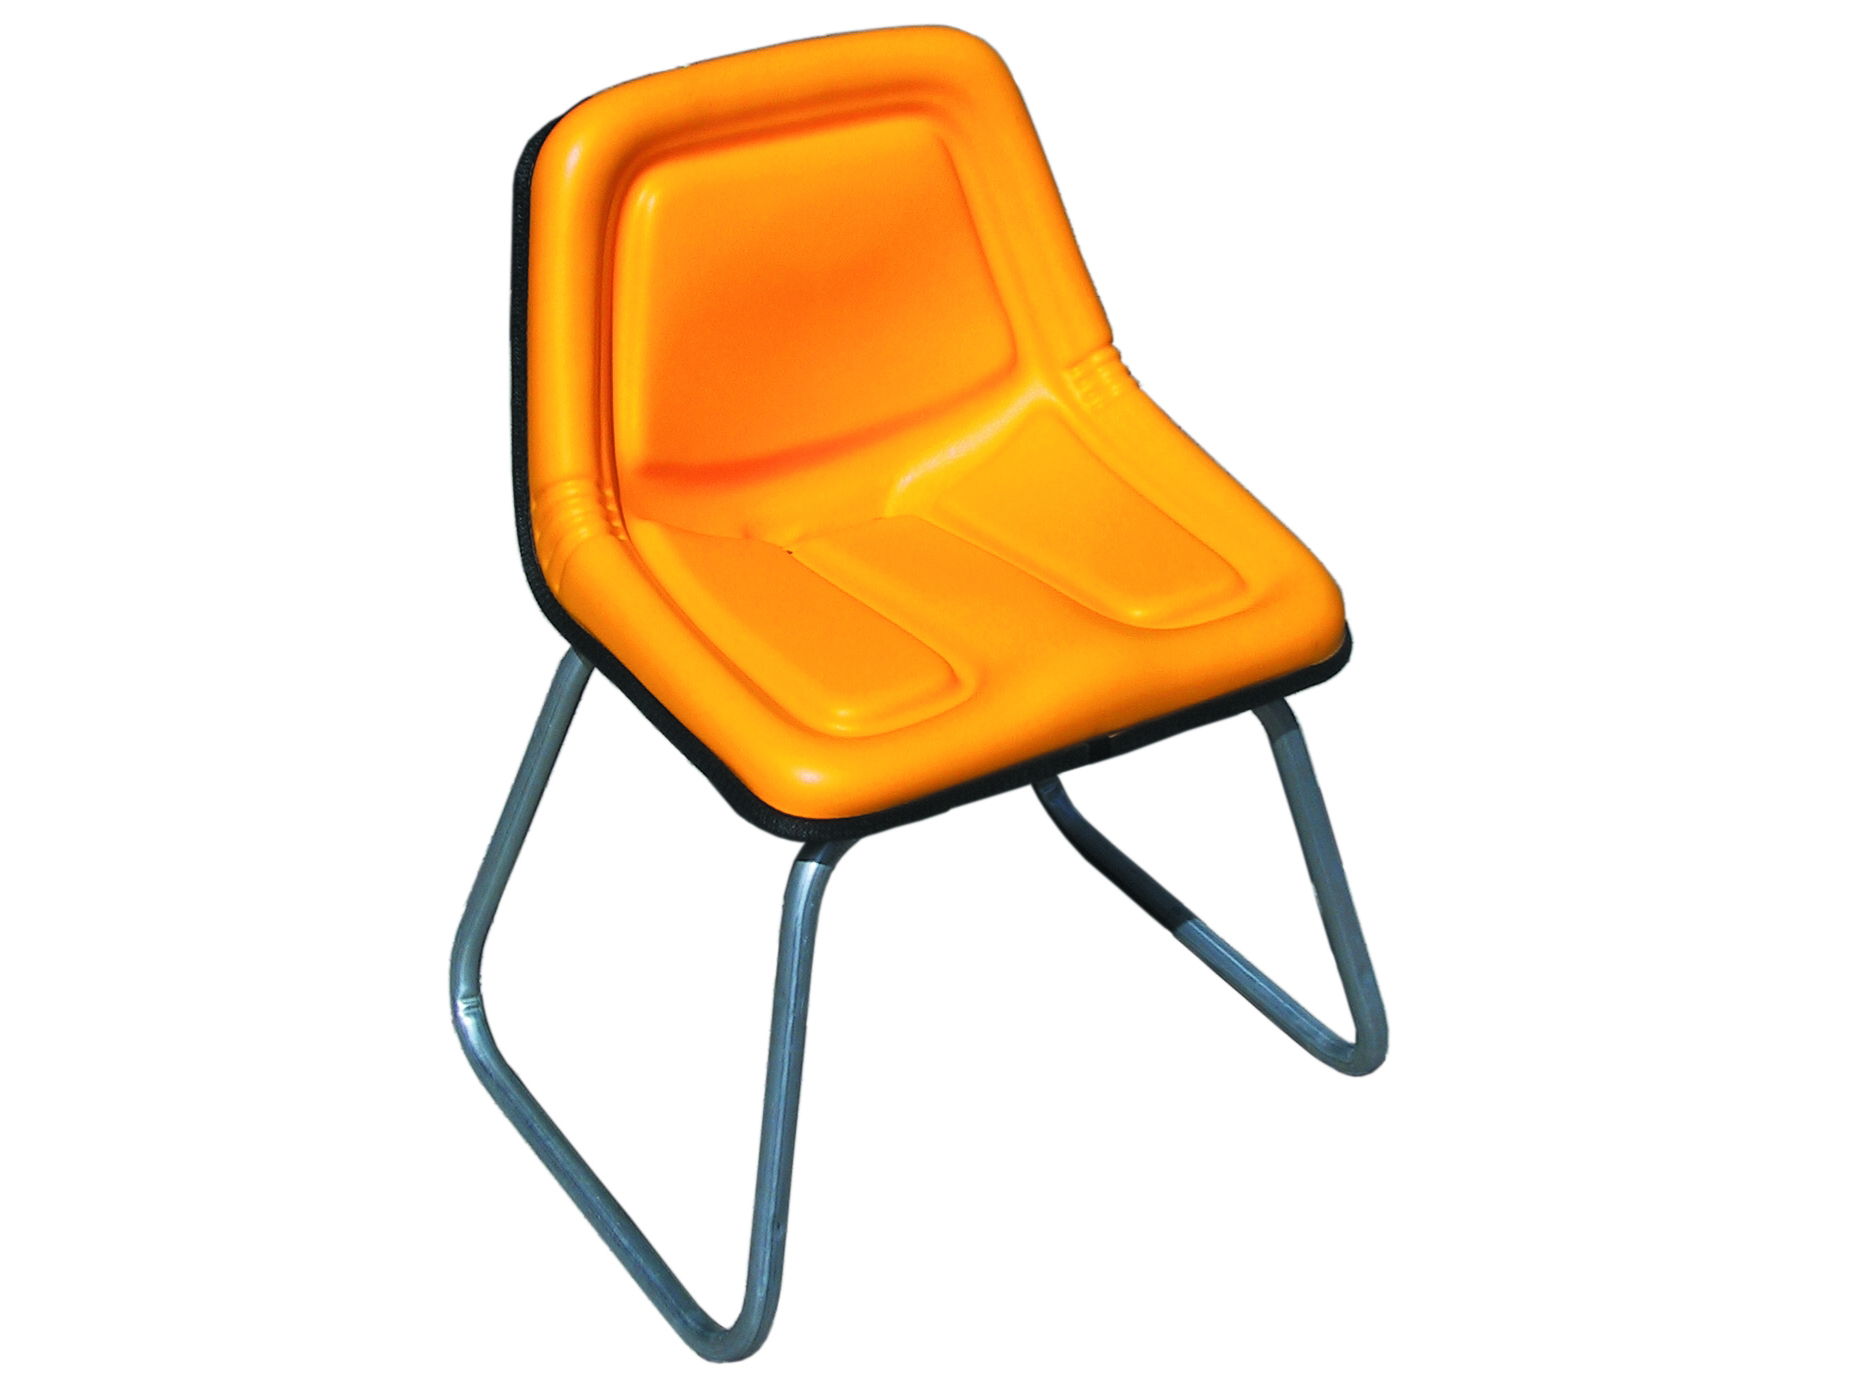 chair 1_cutout.jpg